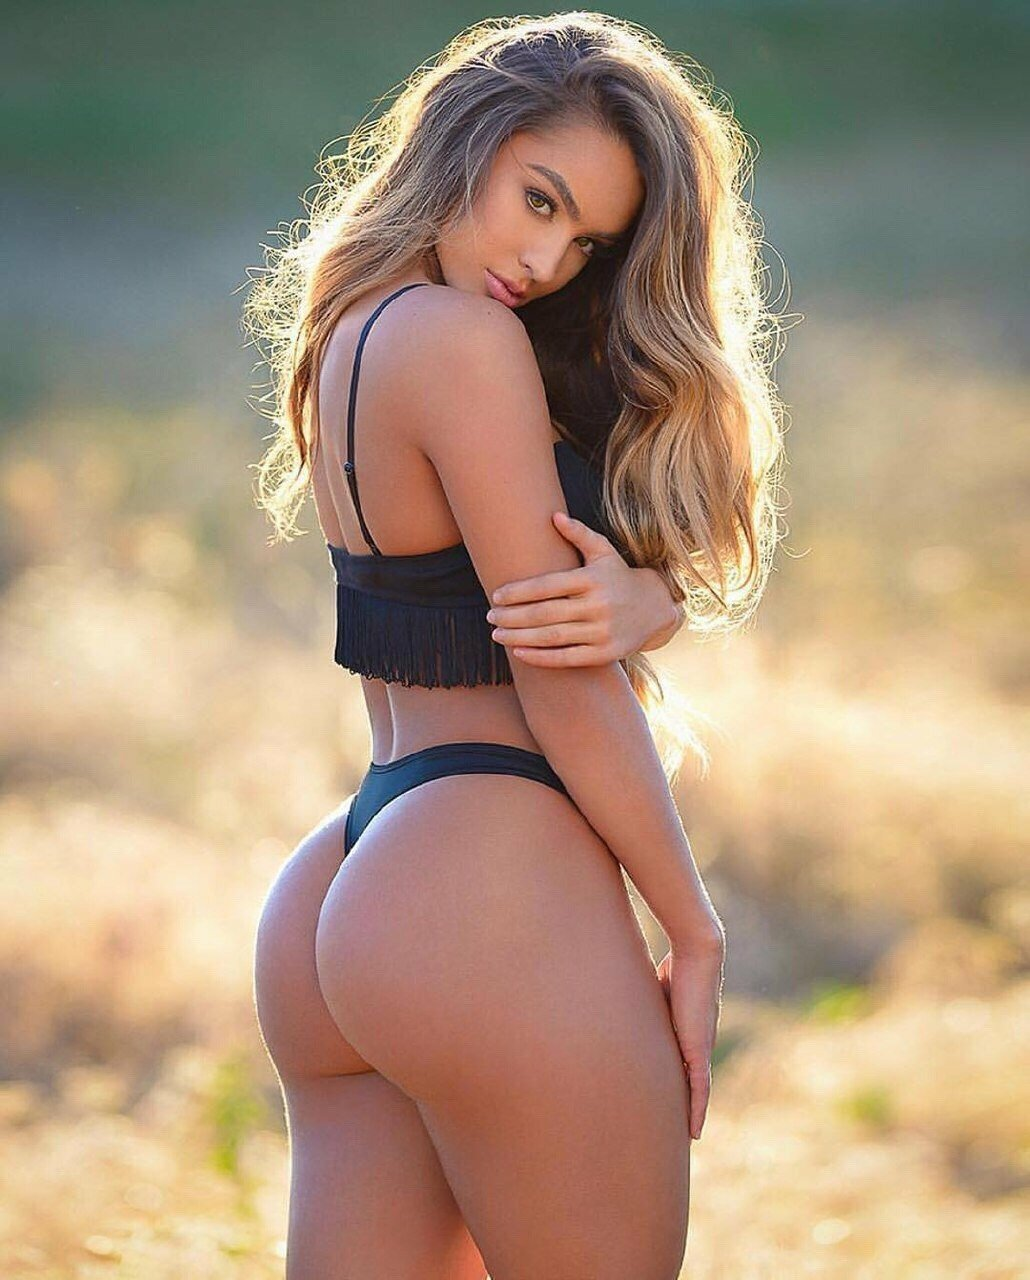 Booty babes pics